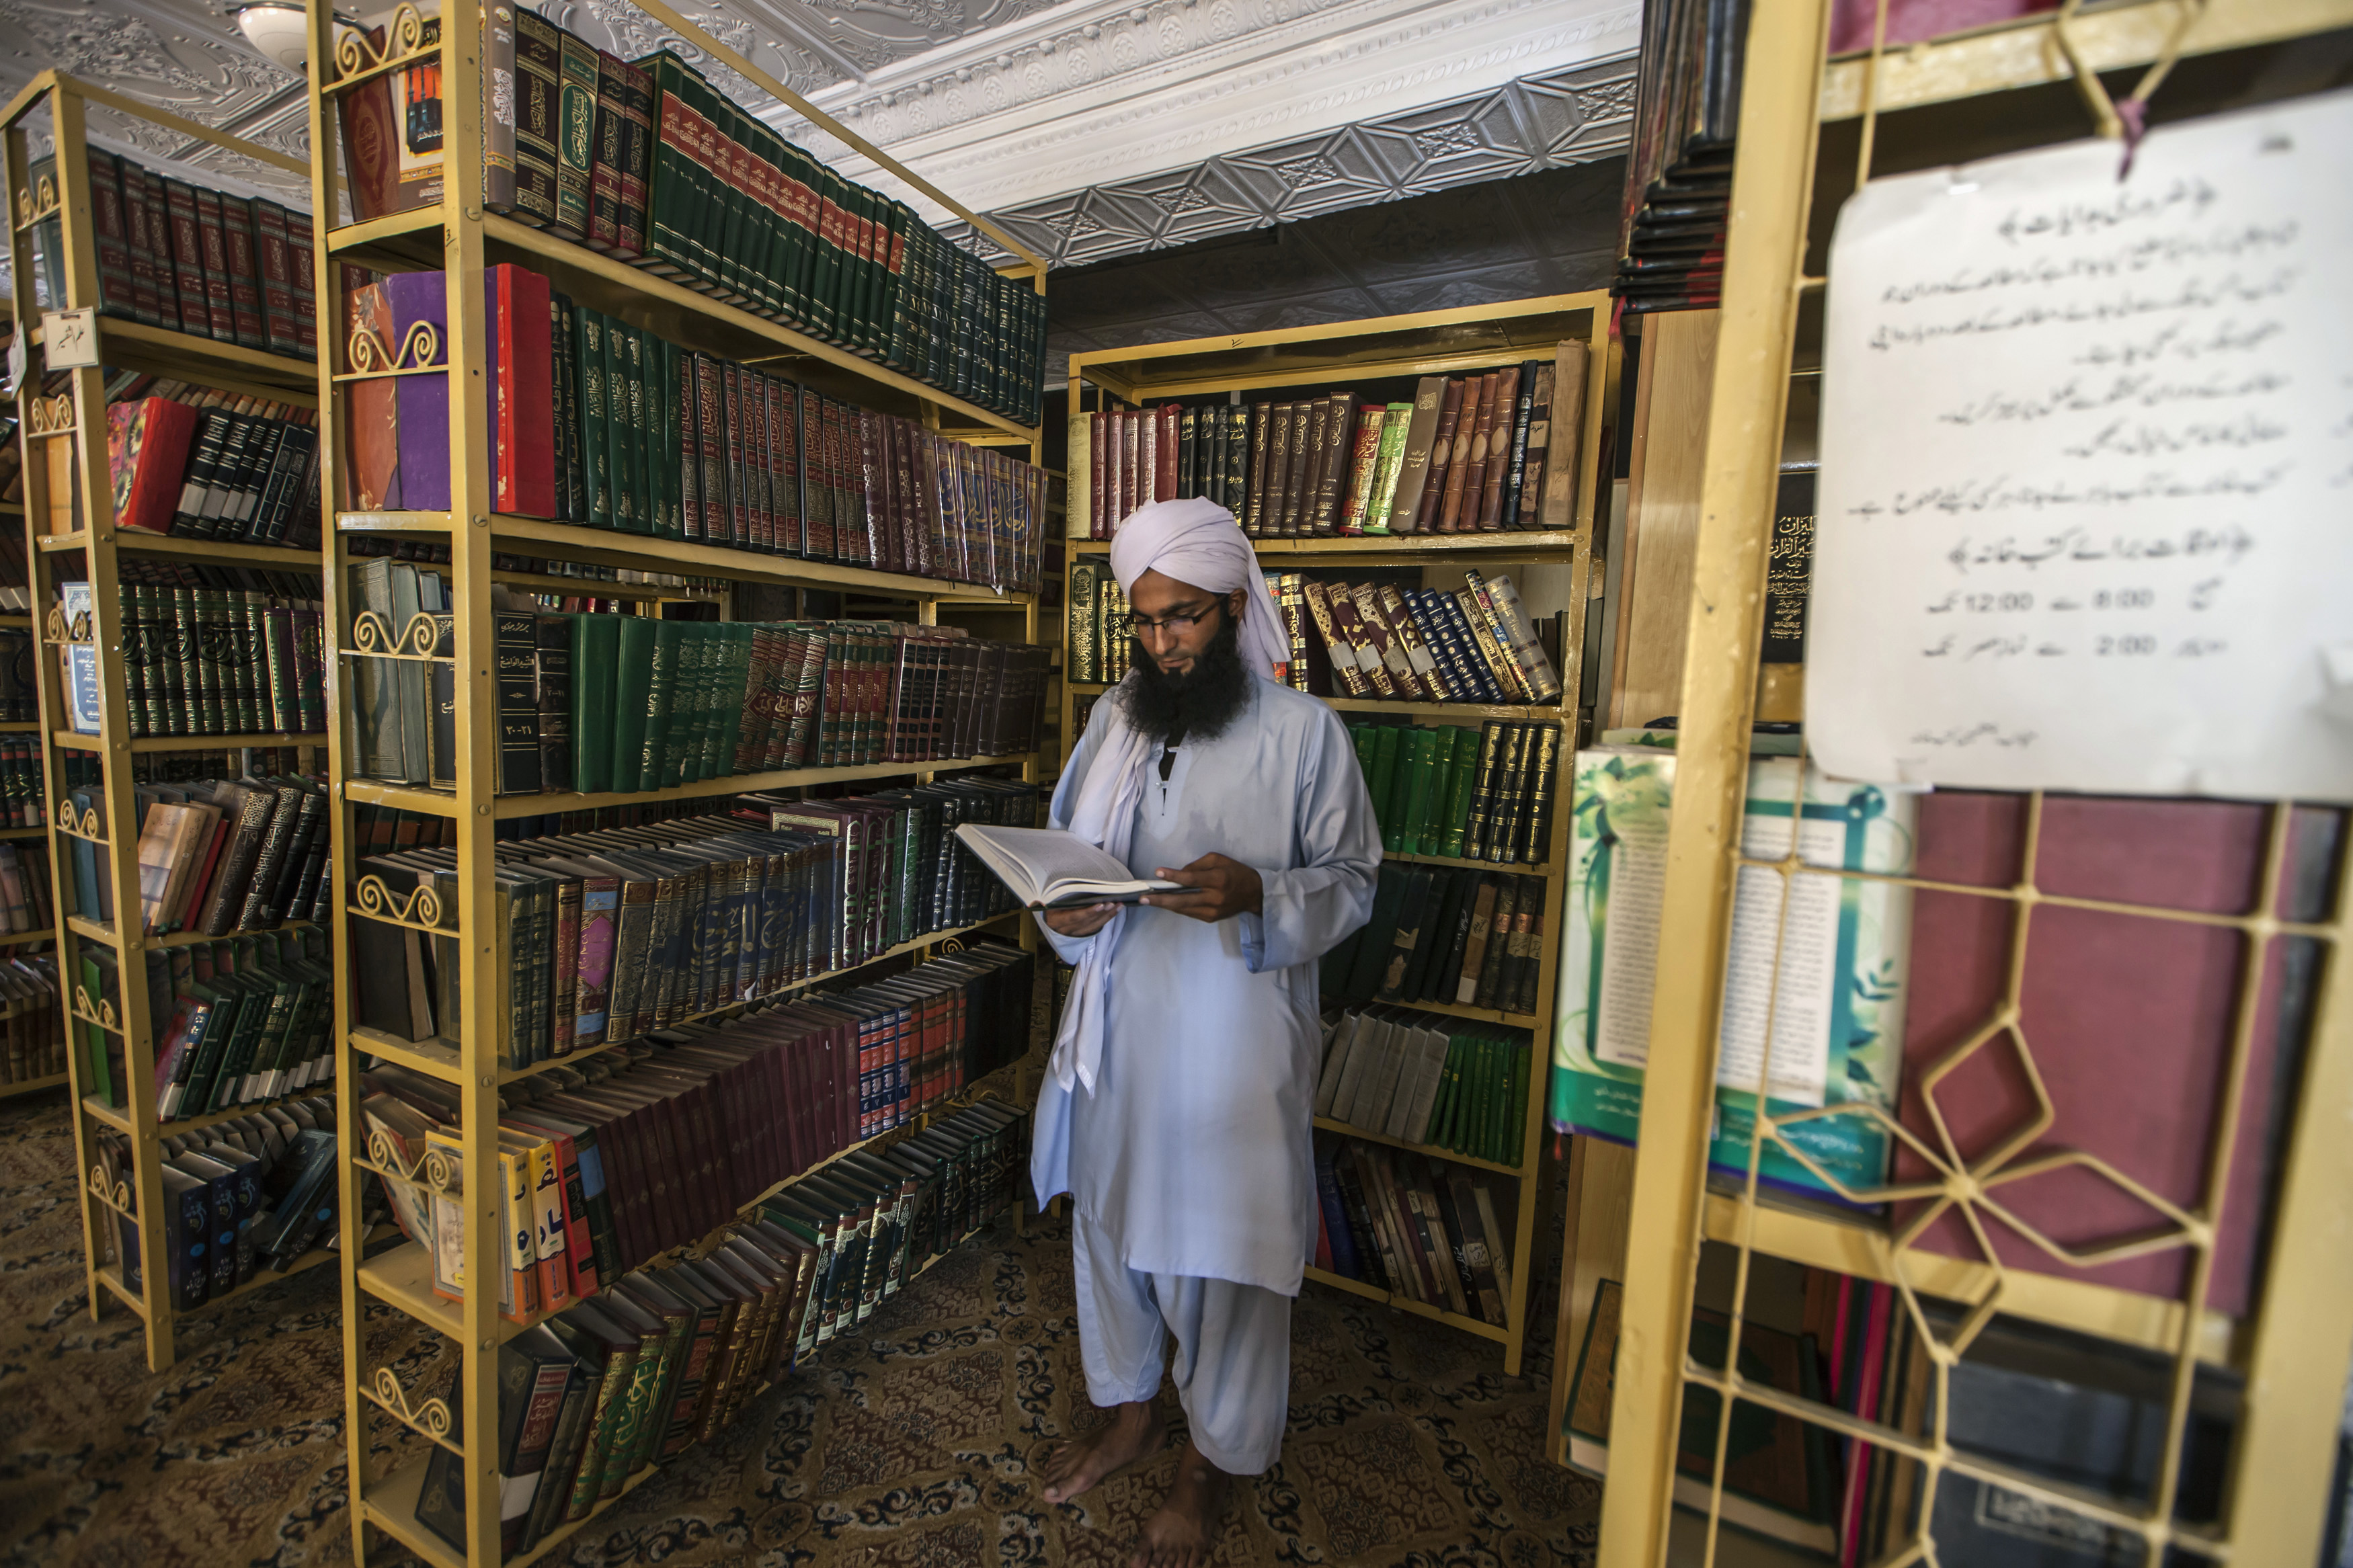 A Pakistani religious teacher refers to a book at a library at Darul Uloom Haqqania, an Islamic seminary in Akora Khattak, Khyber Pakhtunkhwa province, Sept. 14, 2013.